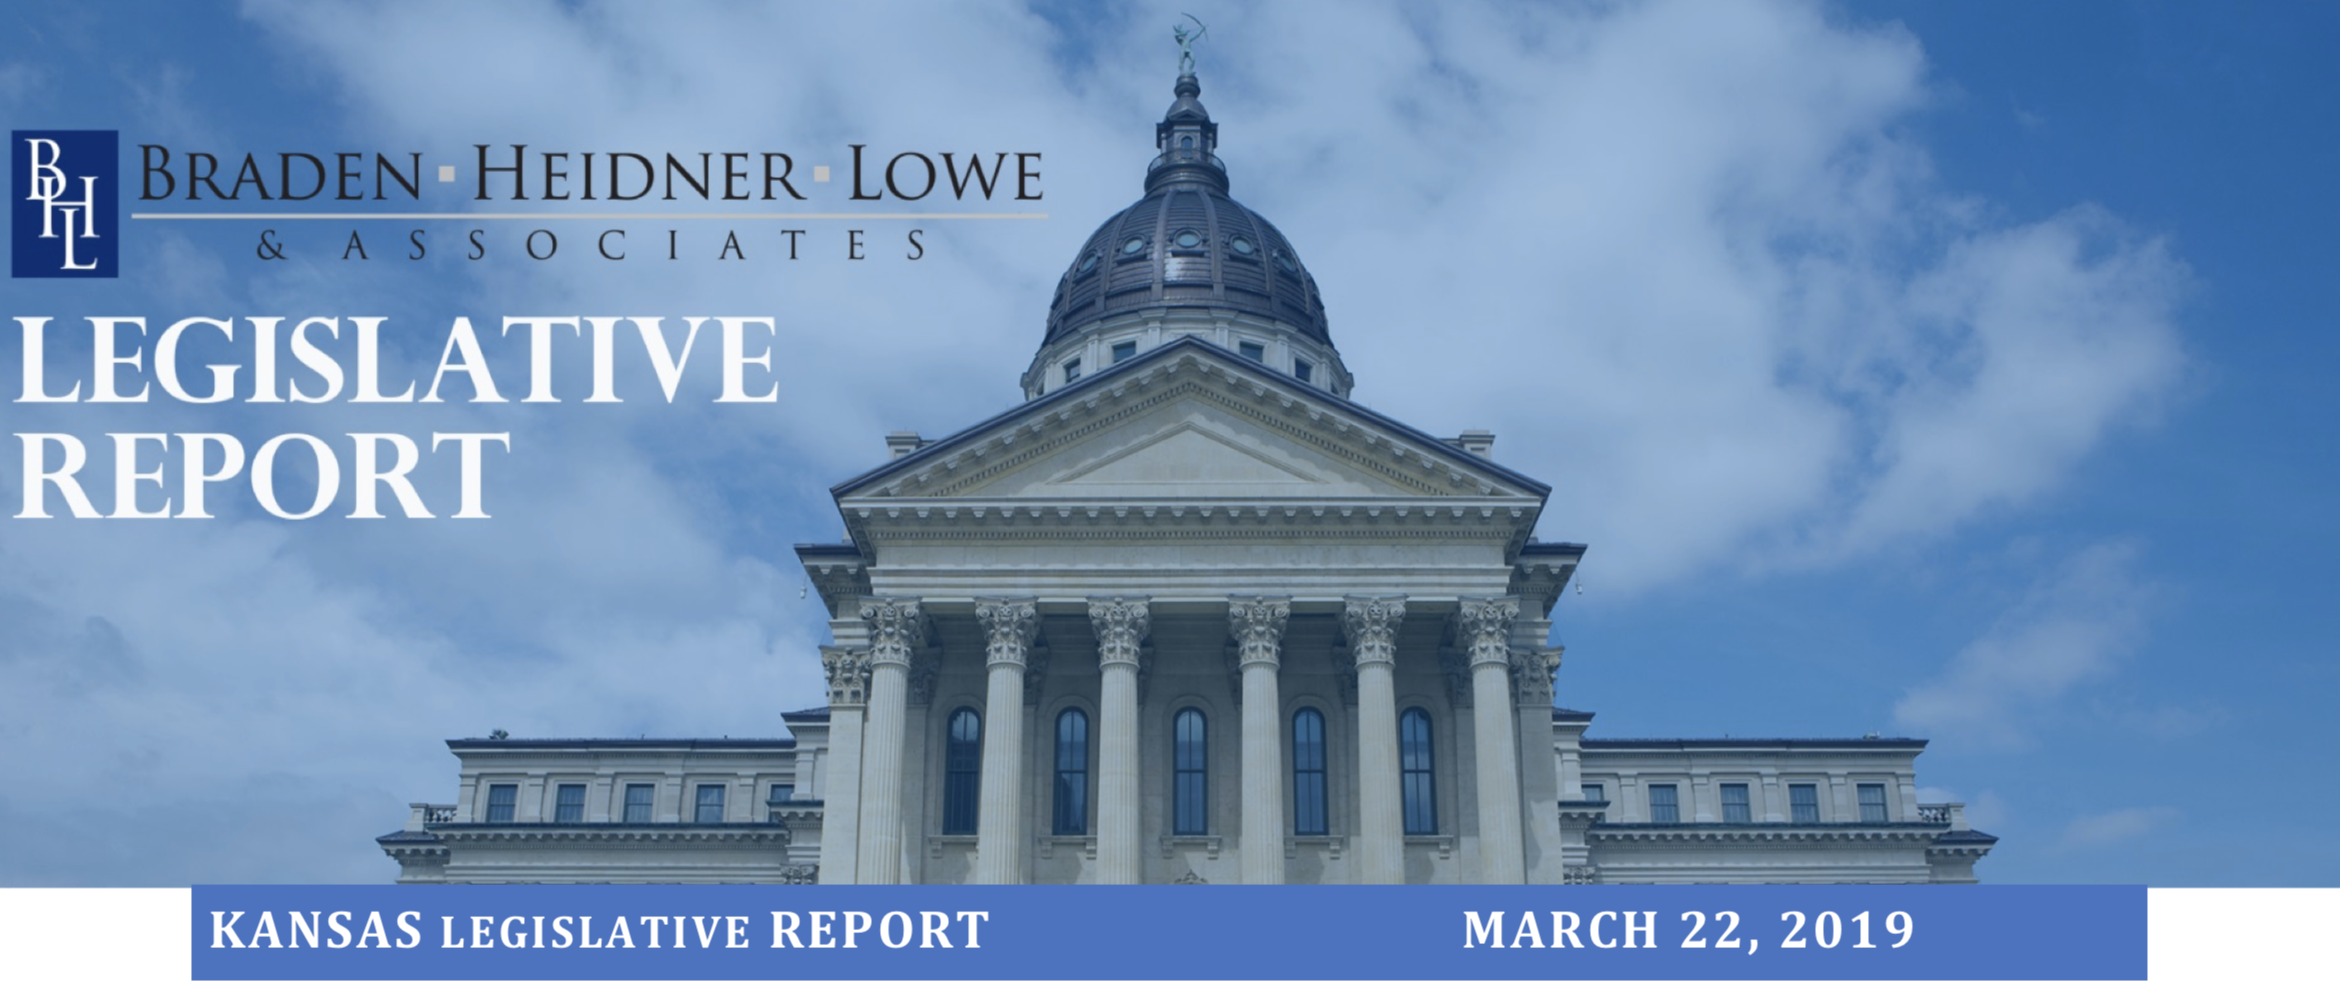 Thumbnail Image For KS Legislative Report March 22, 2019 - Click Here To See